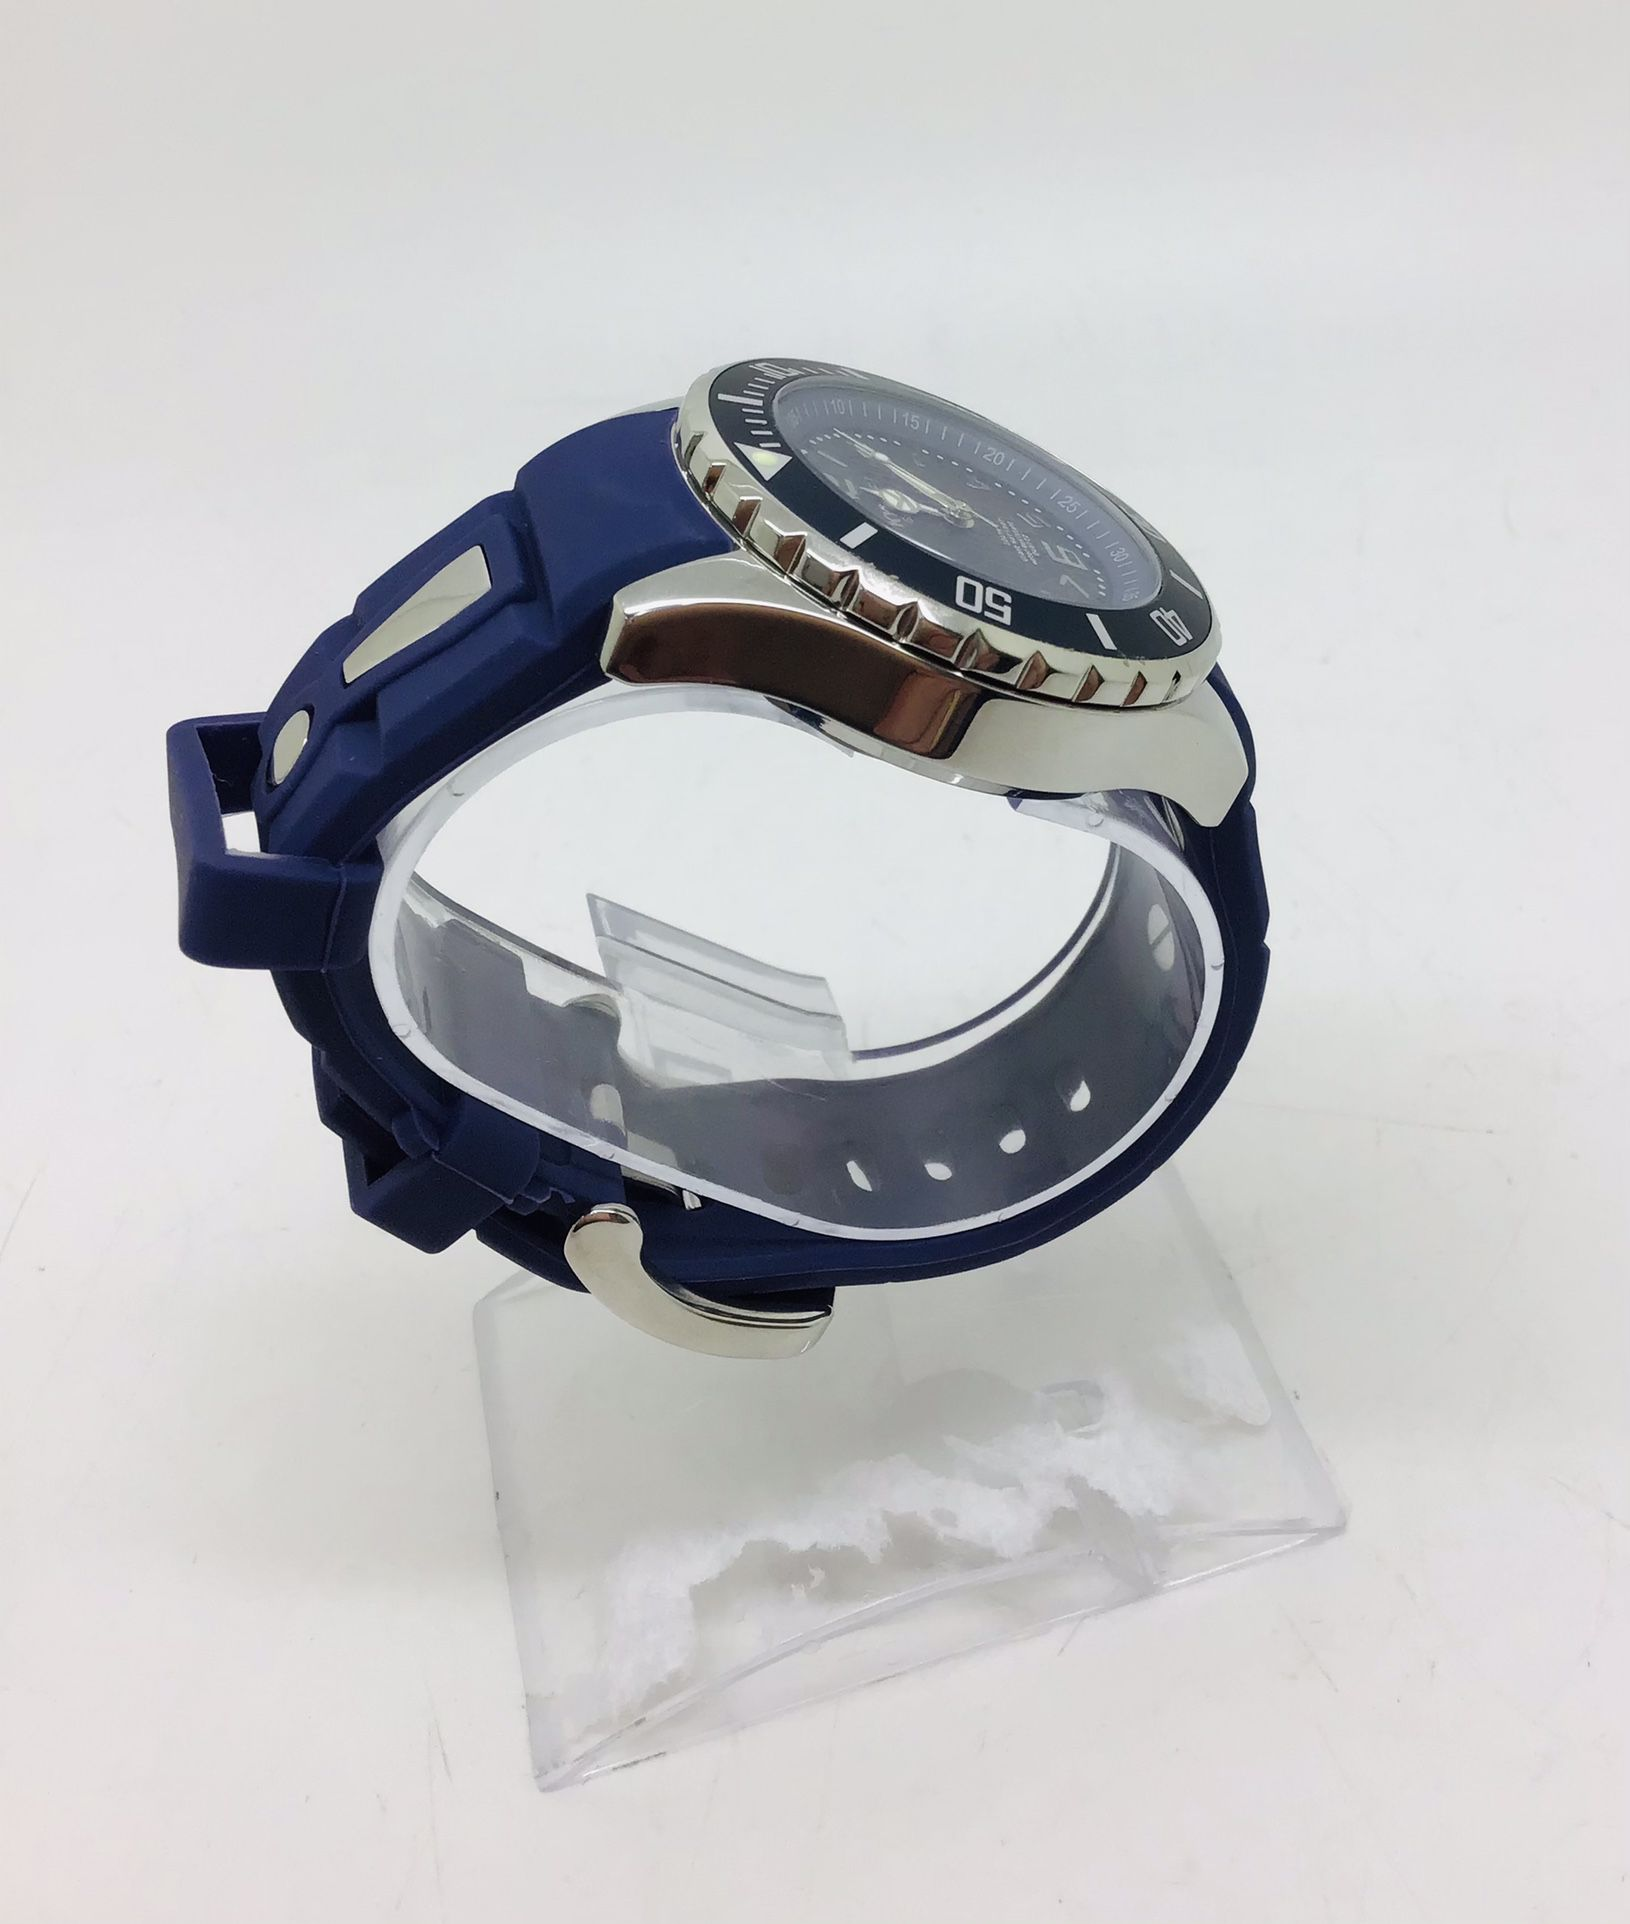 BRAND NEW  KYBOE GIANT WATCH  KY 40-037.15  BLUE SILICON BAND UNISEX SIZE